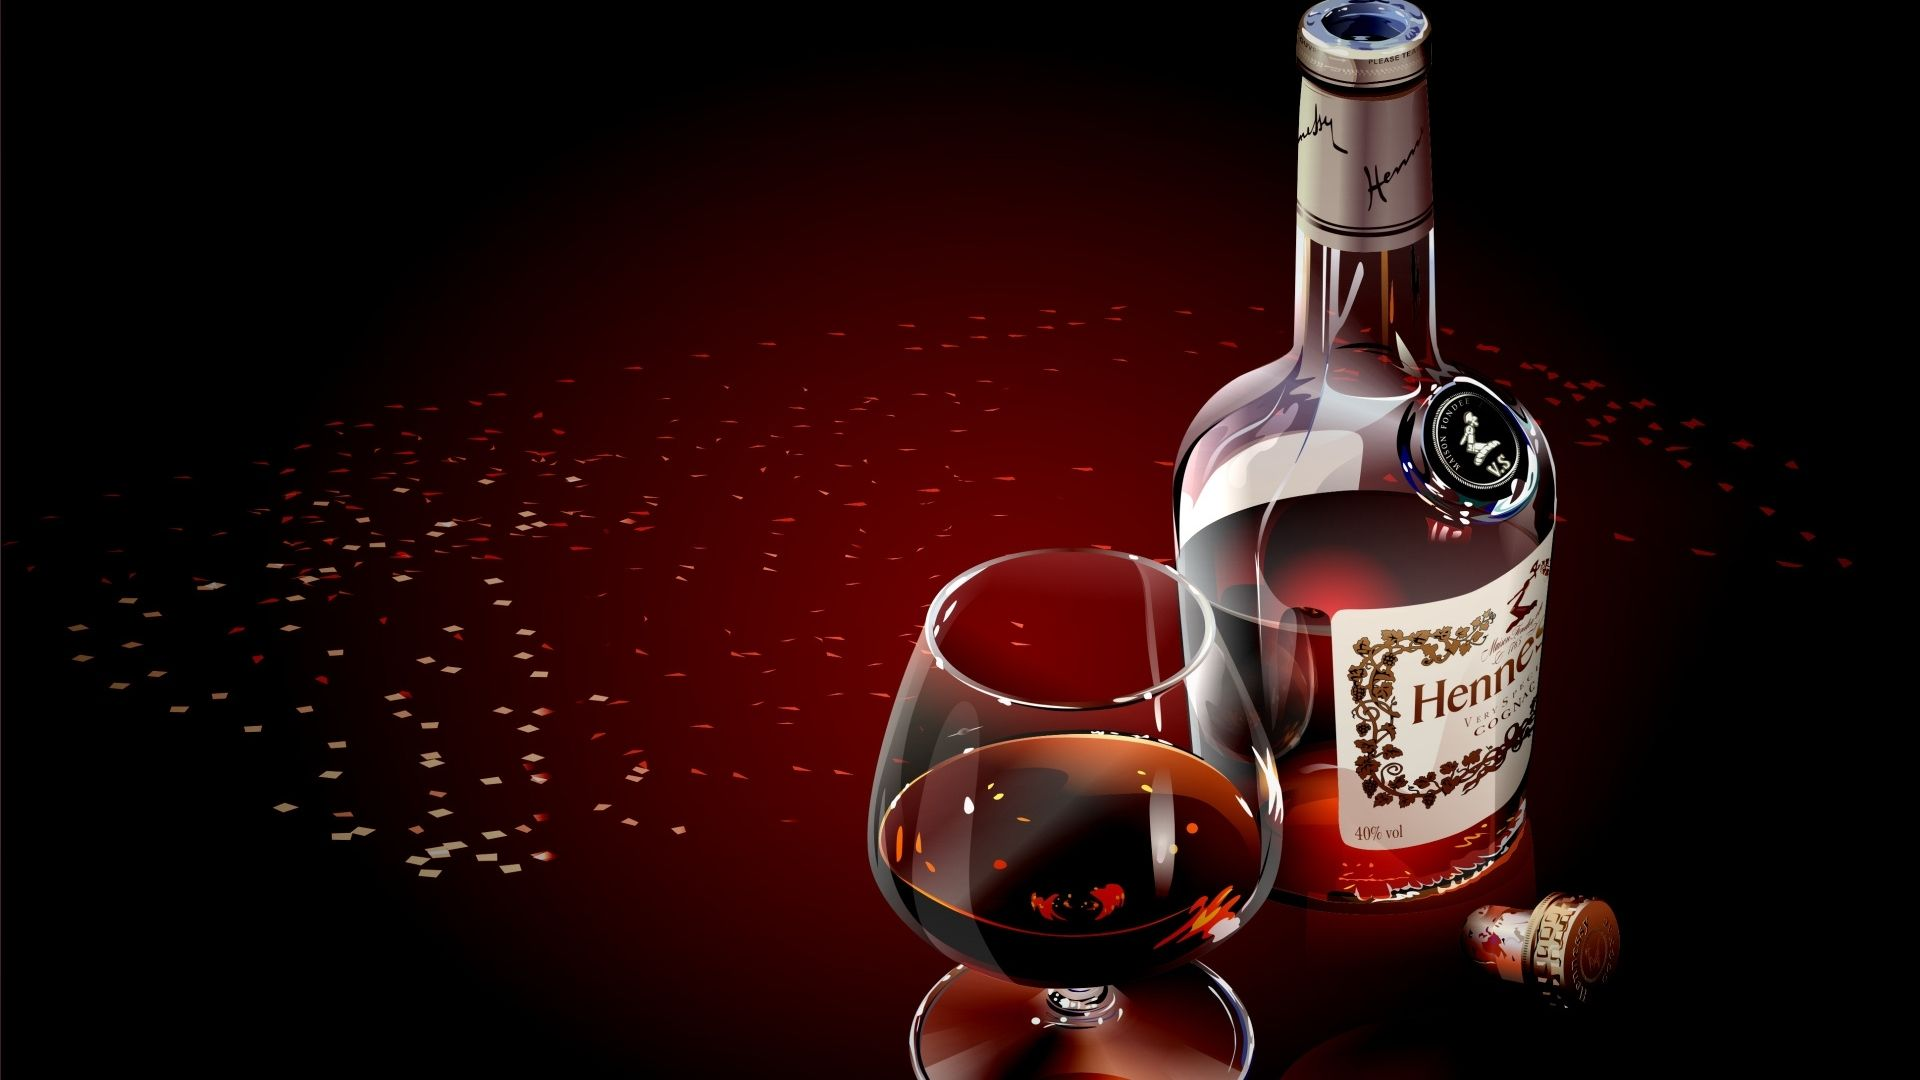 Download Wallpaper 1920x1080 Hennessy Glass Cognac Luxury Alcohol Table Full Hd 1080p Hd Background Wine Wallpaper Wine Bottle Red Wine Bottle